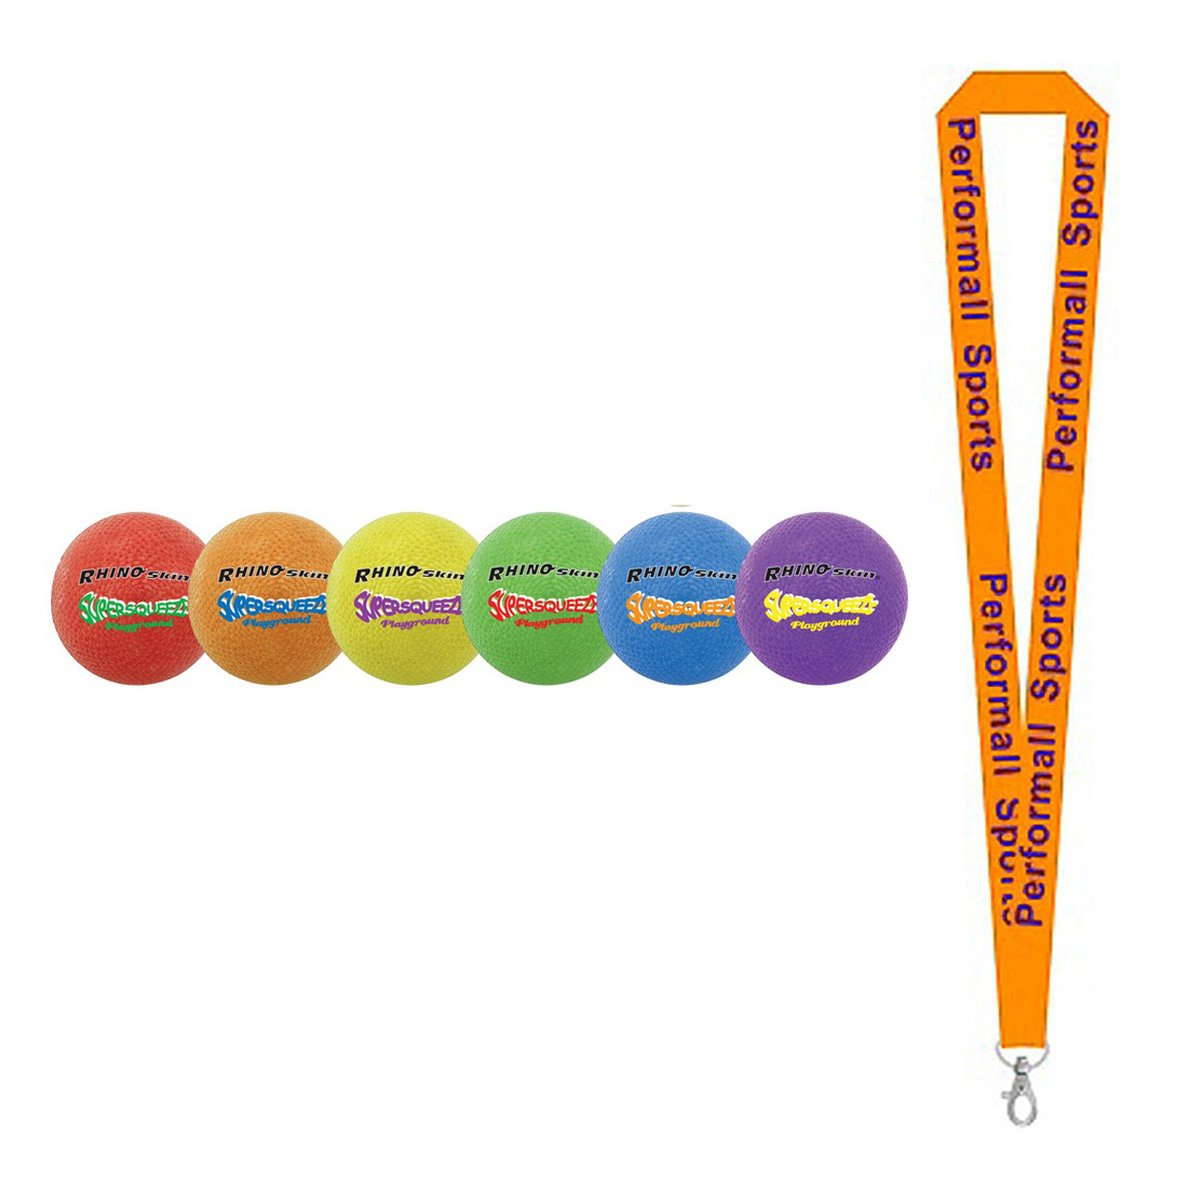 【内祝い】 ChampionスポーツRhinoスキンSuper ) Squeeze Playground Assorted 6 Ball Set Assorted ( Set of 6 ) with 1 performall Lanyard sqpgset-1p B01FSZ7C16, La Cave de Meditrina:a446b20a --- arianechie.dominiotemporario.com